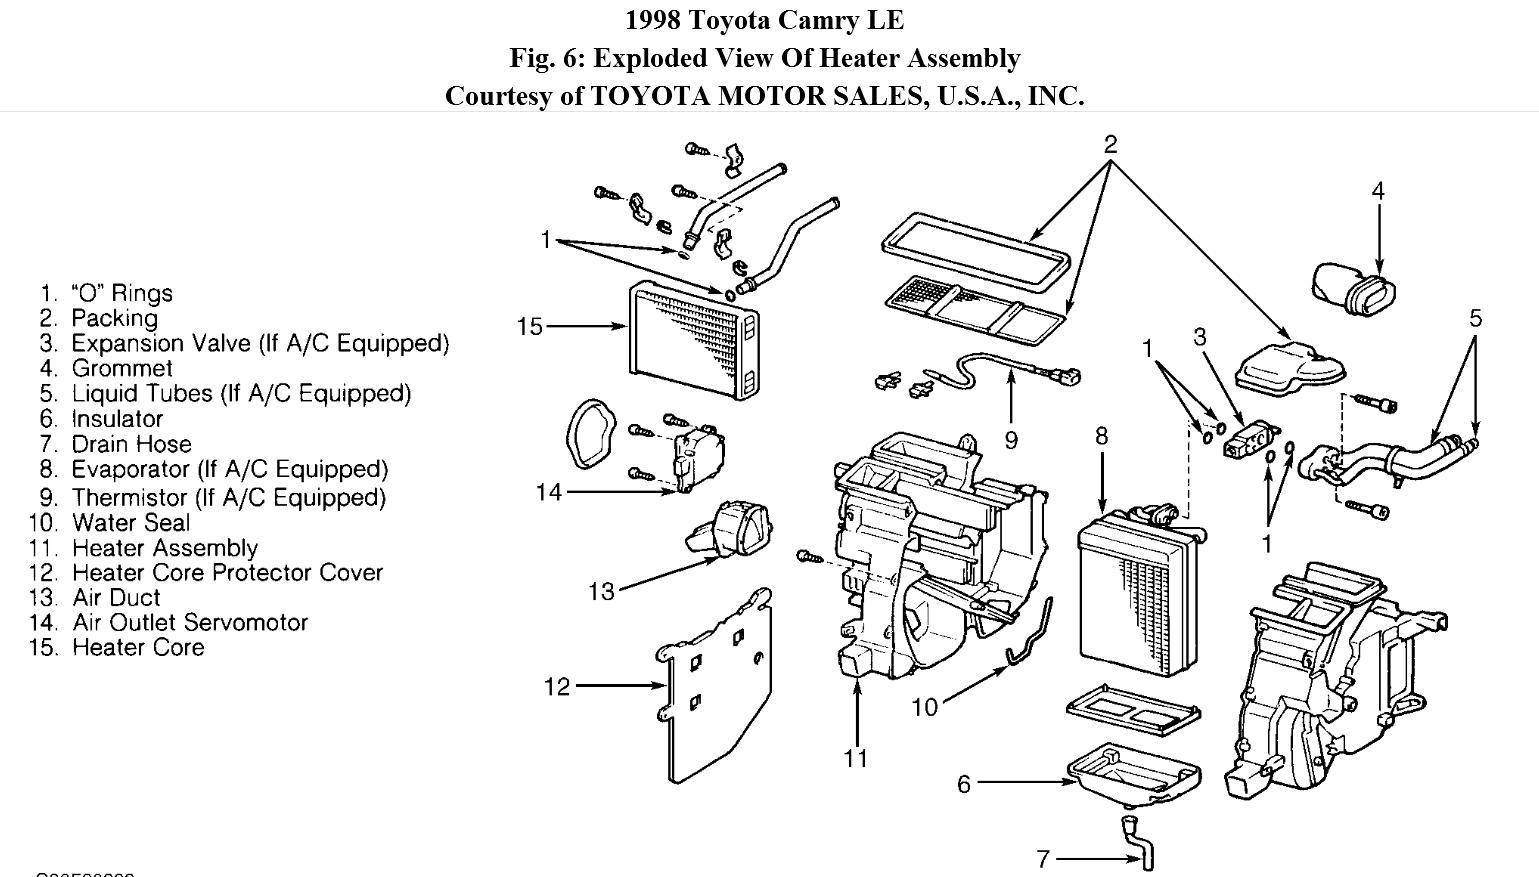 2006 Toyota Avalon Xls Engine Diagram. Toyota. Auto Wiring